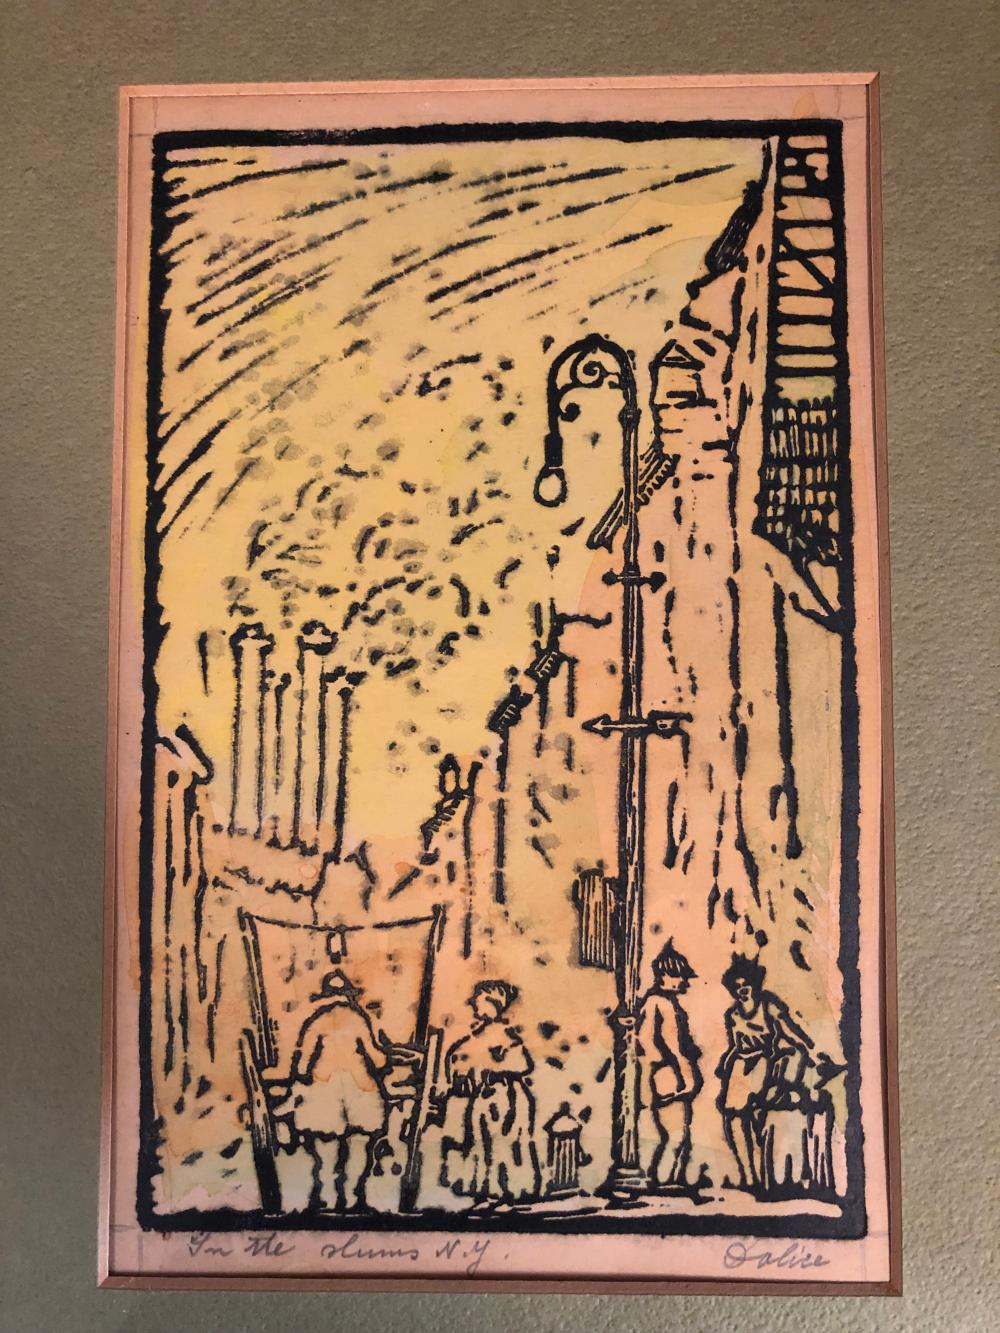 "RARE one of a kind~ Leon Louis Dolice woodcut ""In the Slums of NY"" signed"